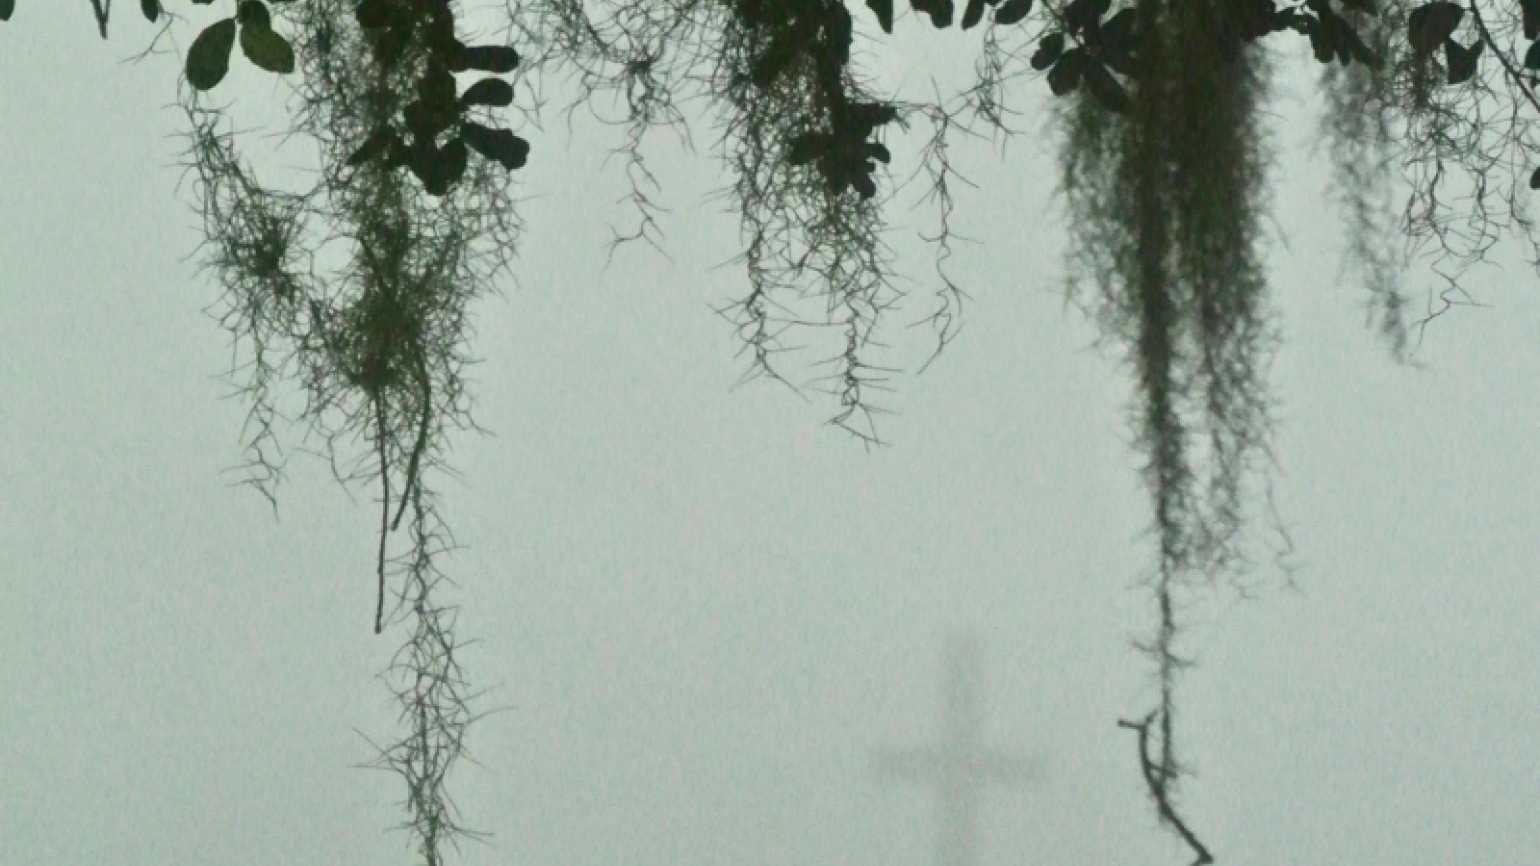 Vines dripping from a tree in the fog with a cross in the background